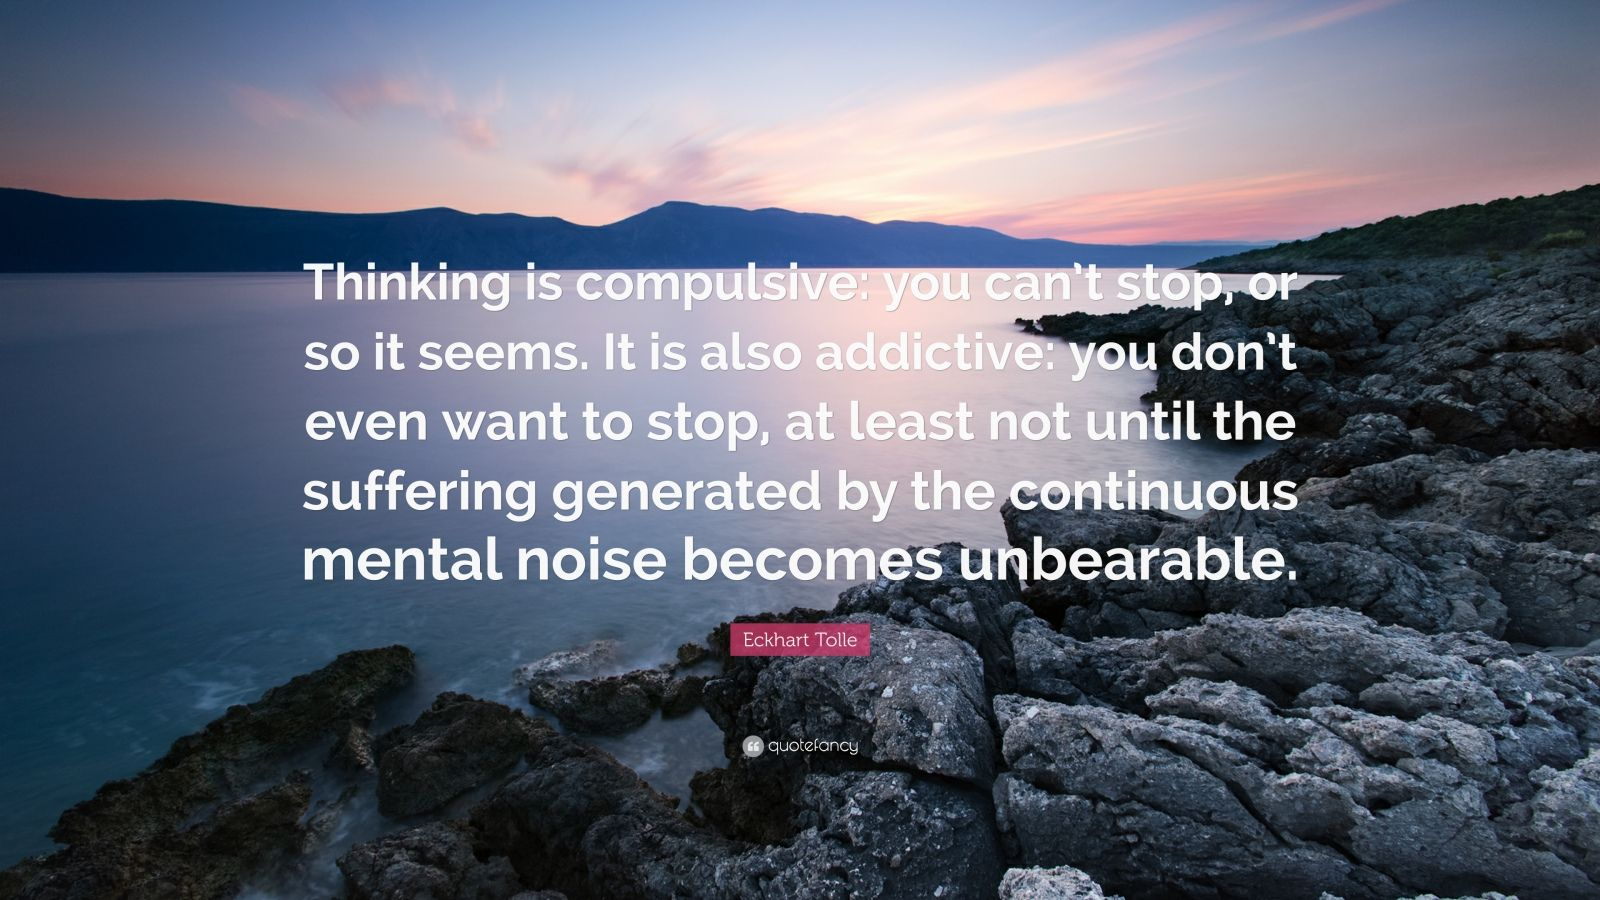 """Eckhart Tolle Quote: """"Thinking is compulsive: you can't stop, or so it seems. It is also addictive: you don't even want to stop, at least not until the suffering generated by the continuous mental noise becomes unbearable."""""""